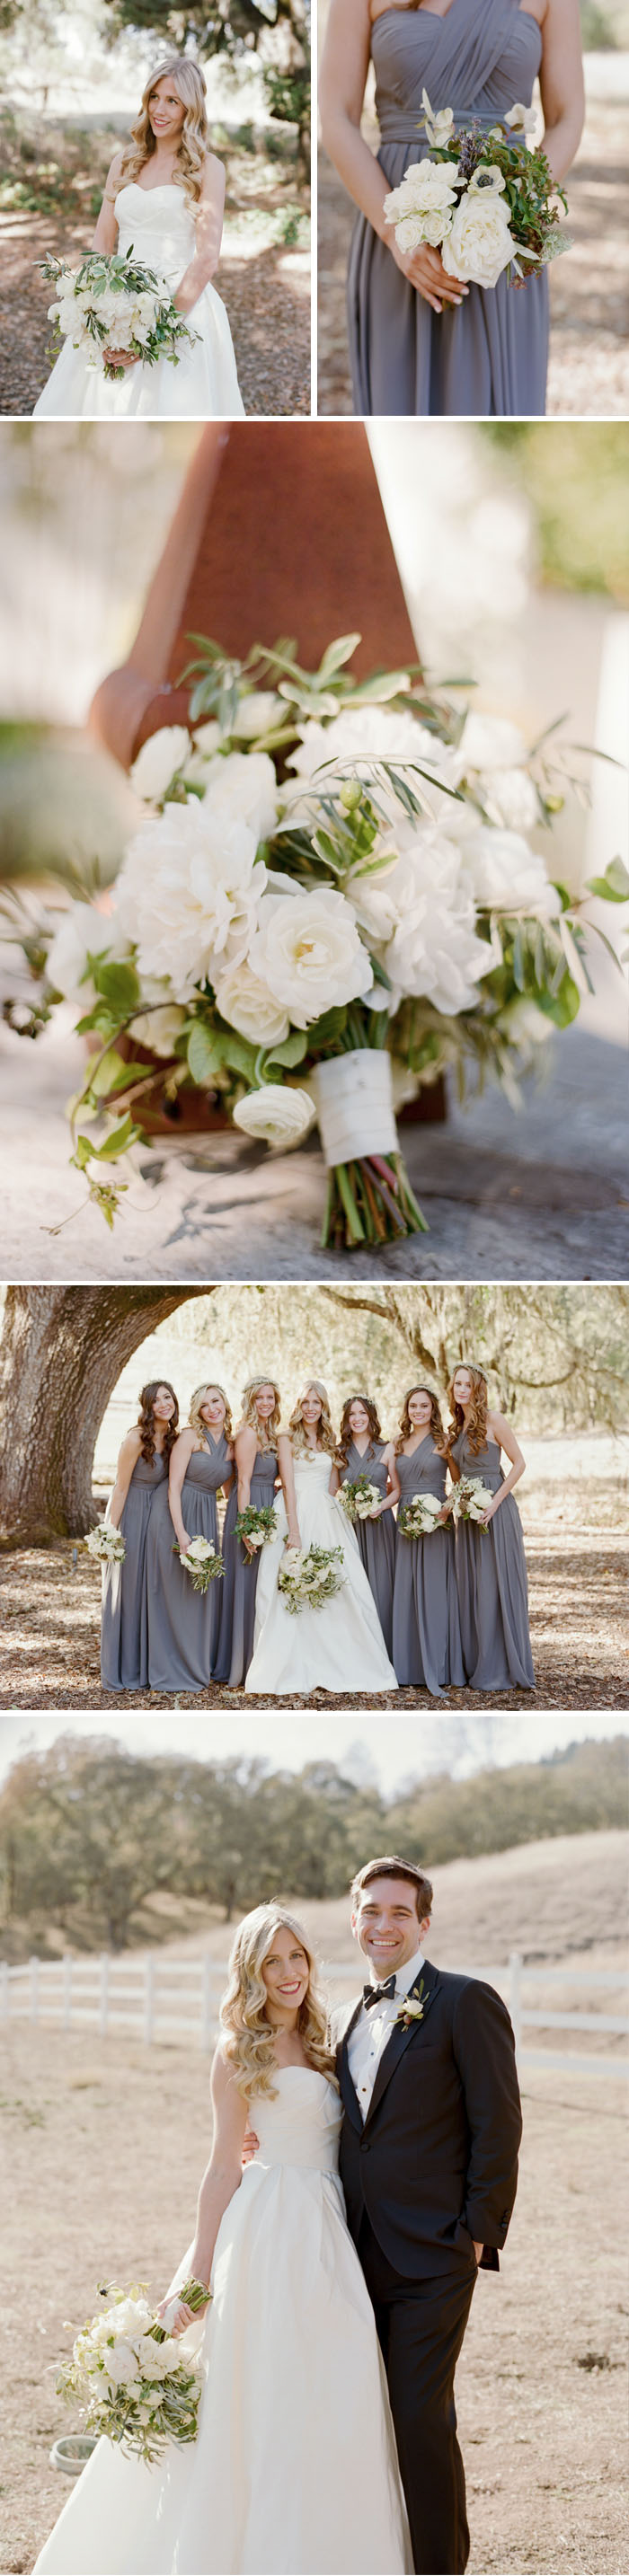 Bride and bridesmaid olive and white bouquets, bride and groom stand in a pasture; Sylvie Gil Photography